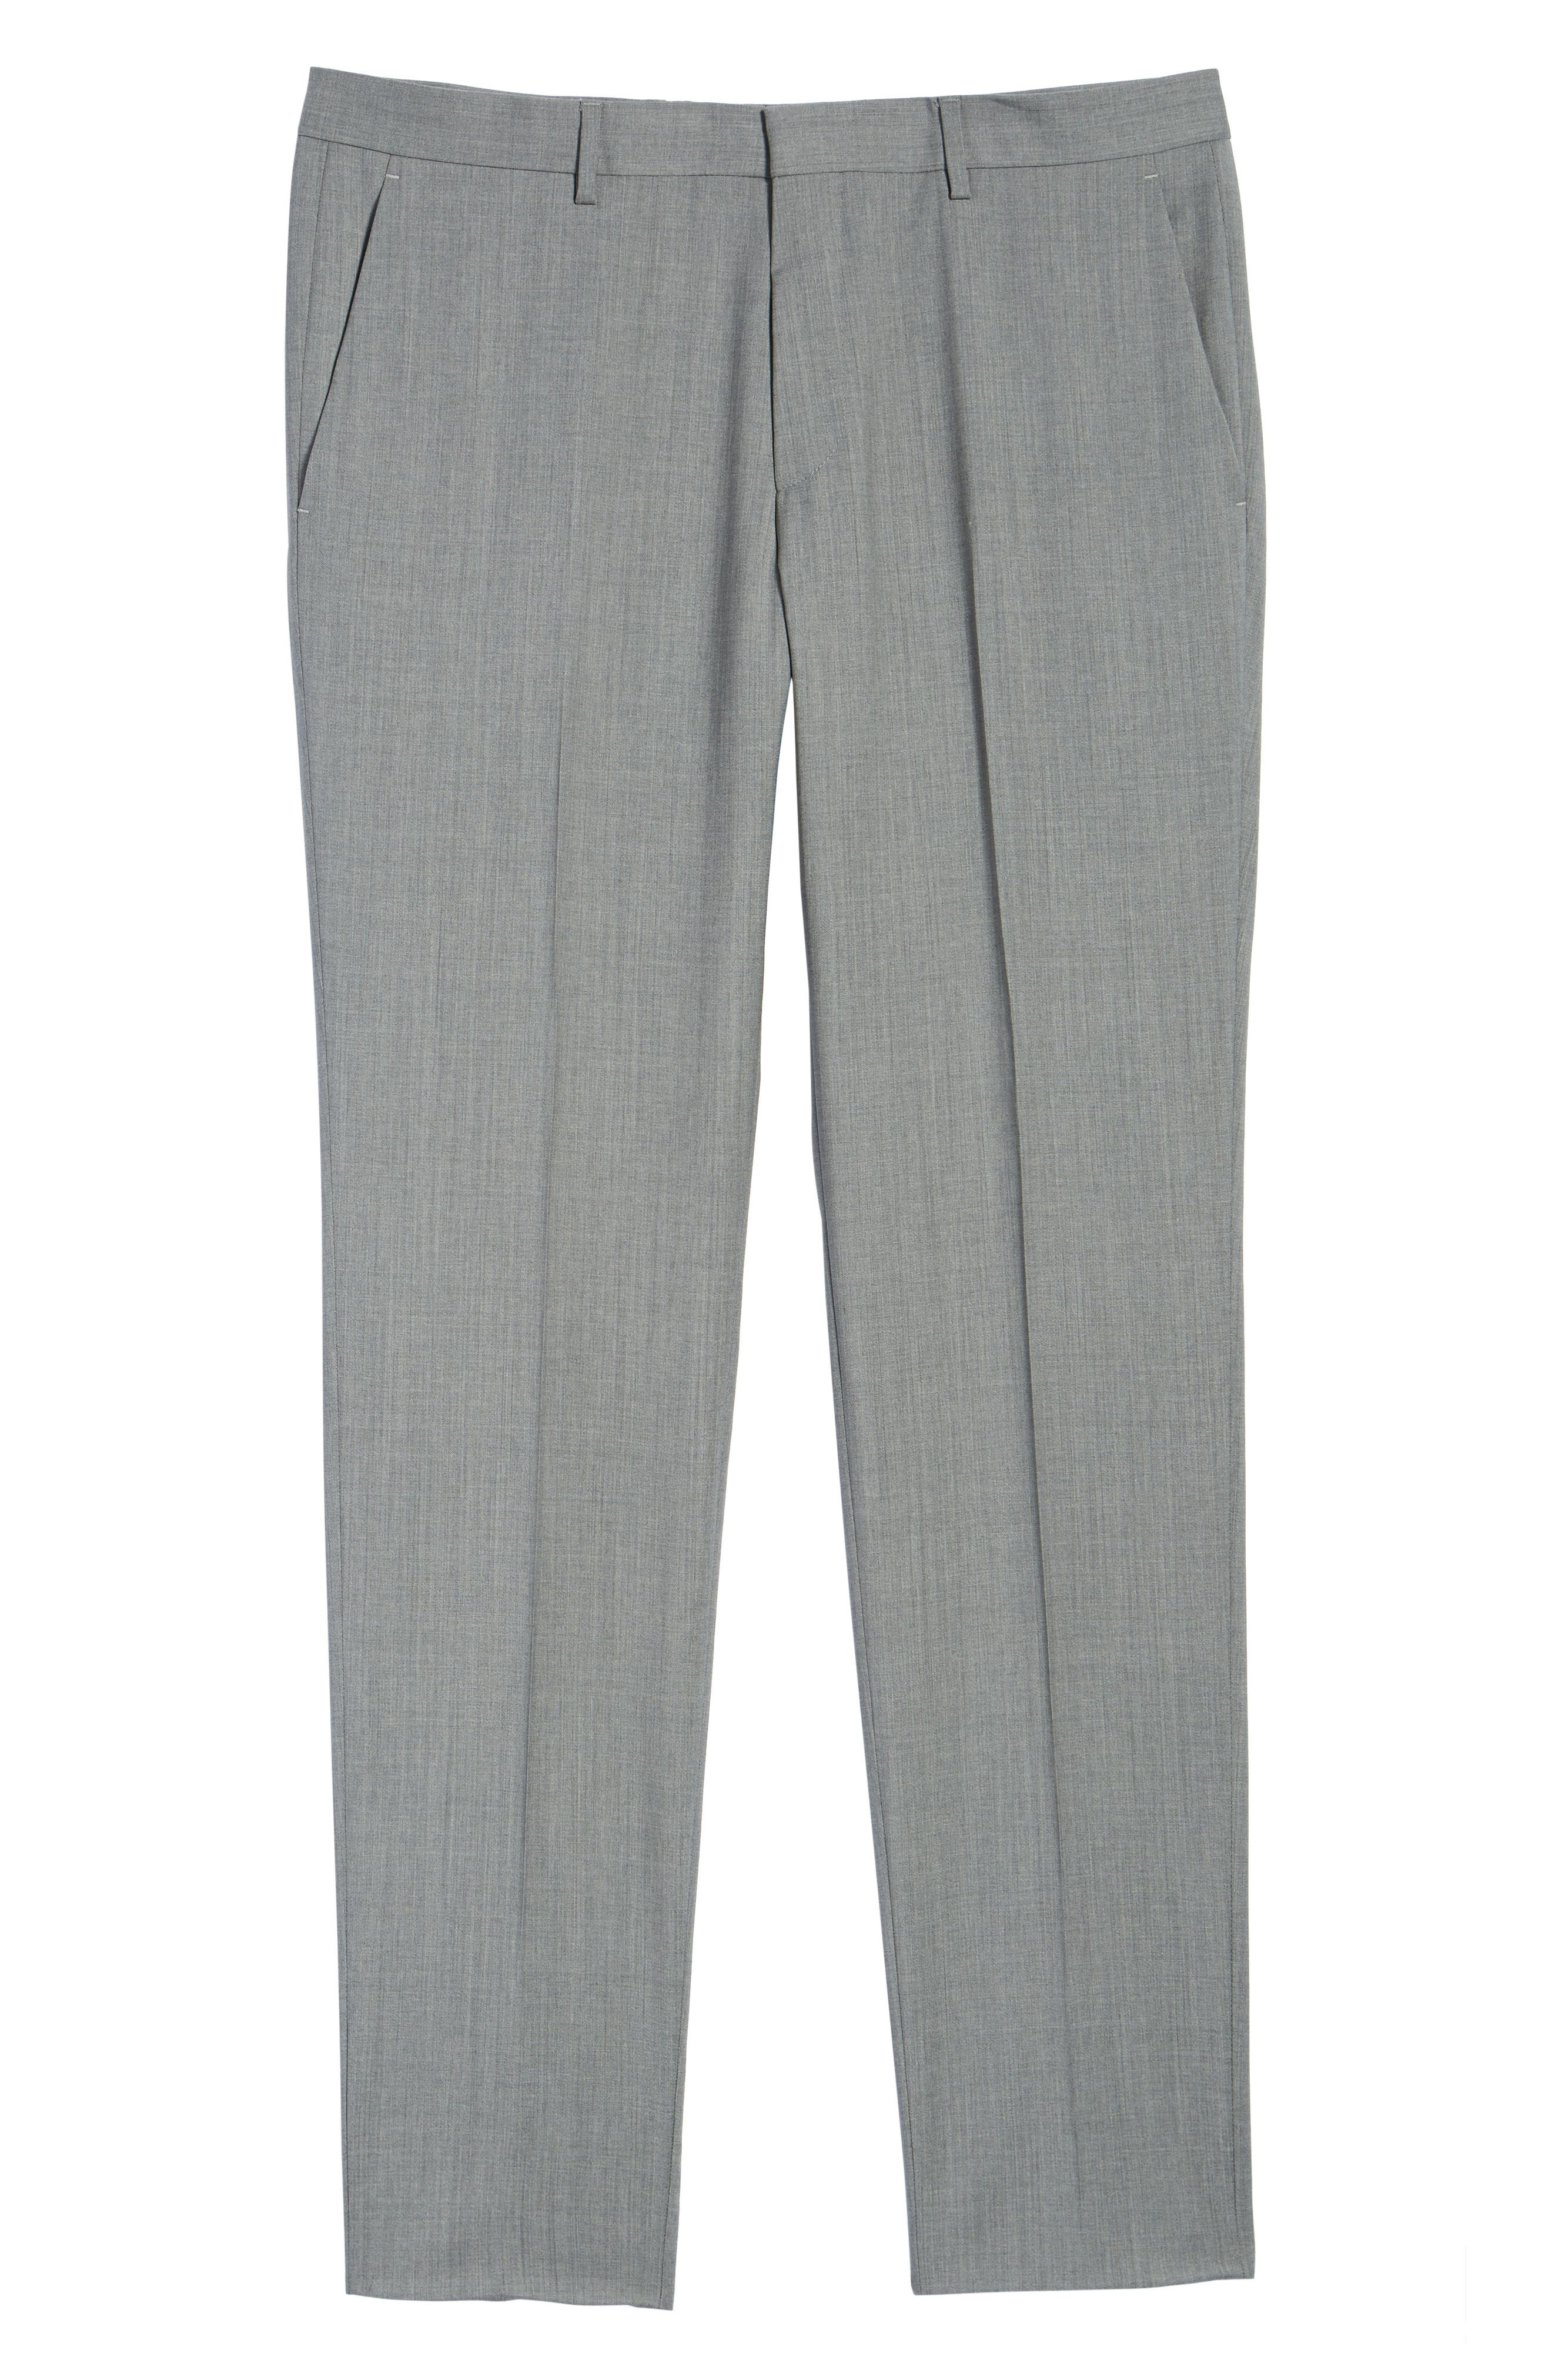 Genesis Flat Front Trim Fit Wool Trousers,                             Alternate thumbnail 7, color,                             GREY